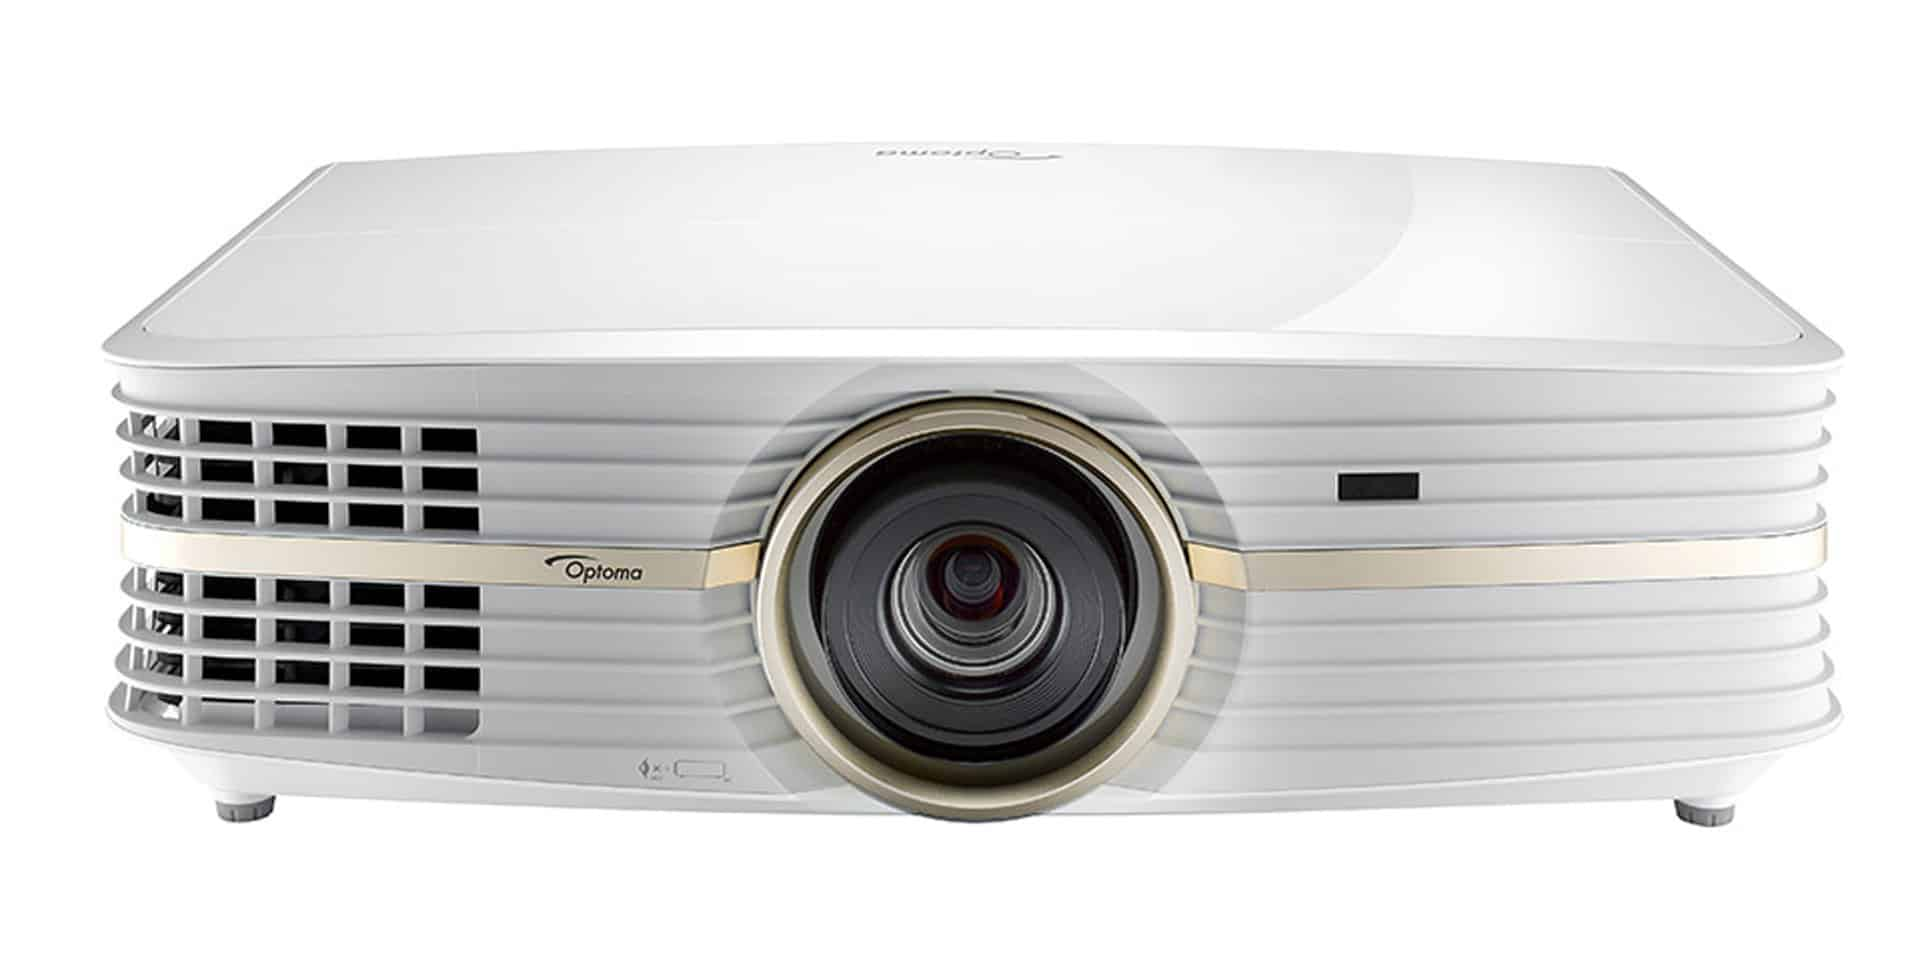 Optoma's UHD65 4K Home Cinema Projector